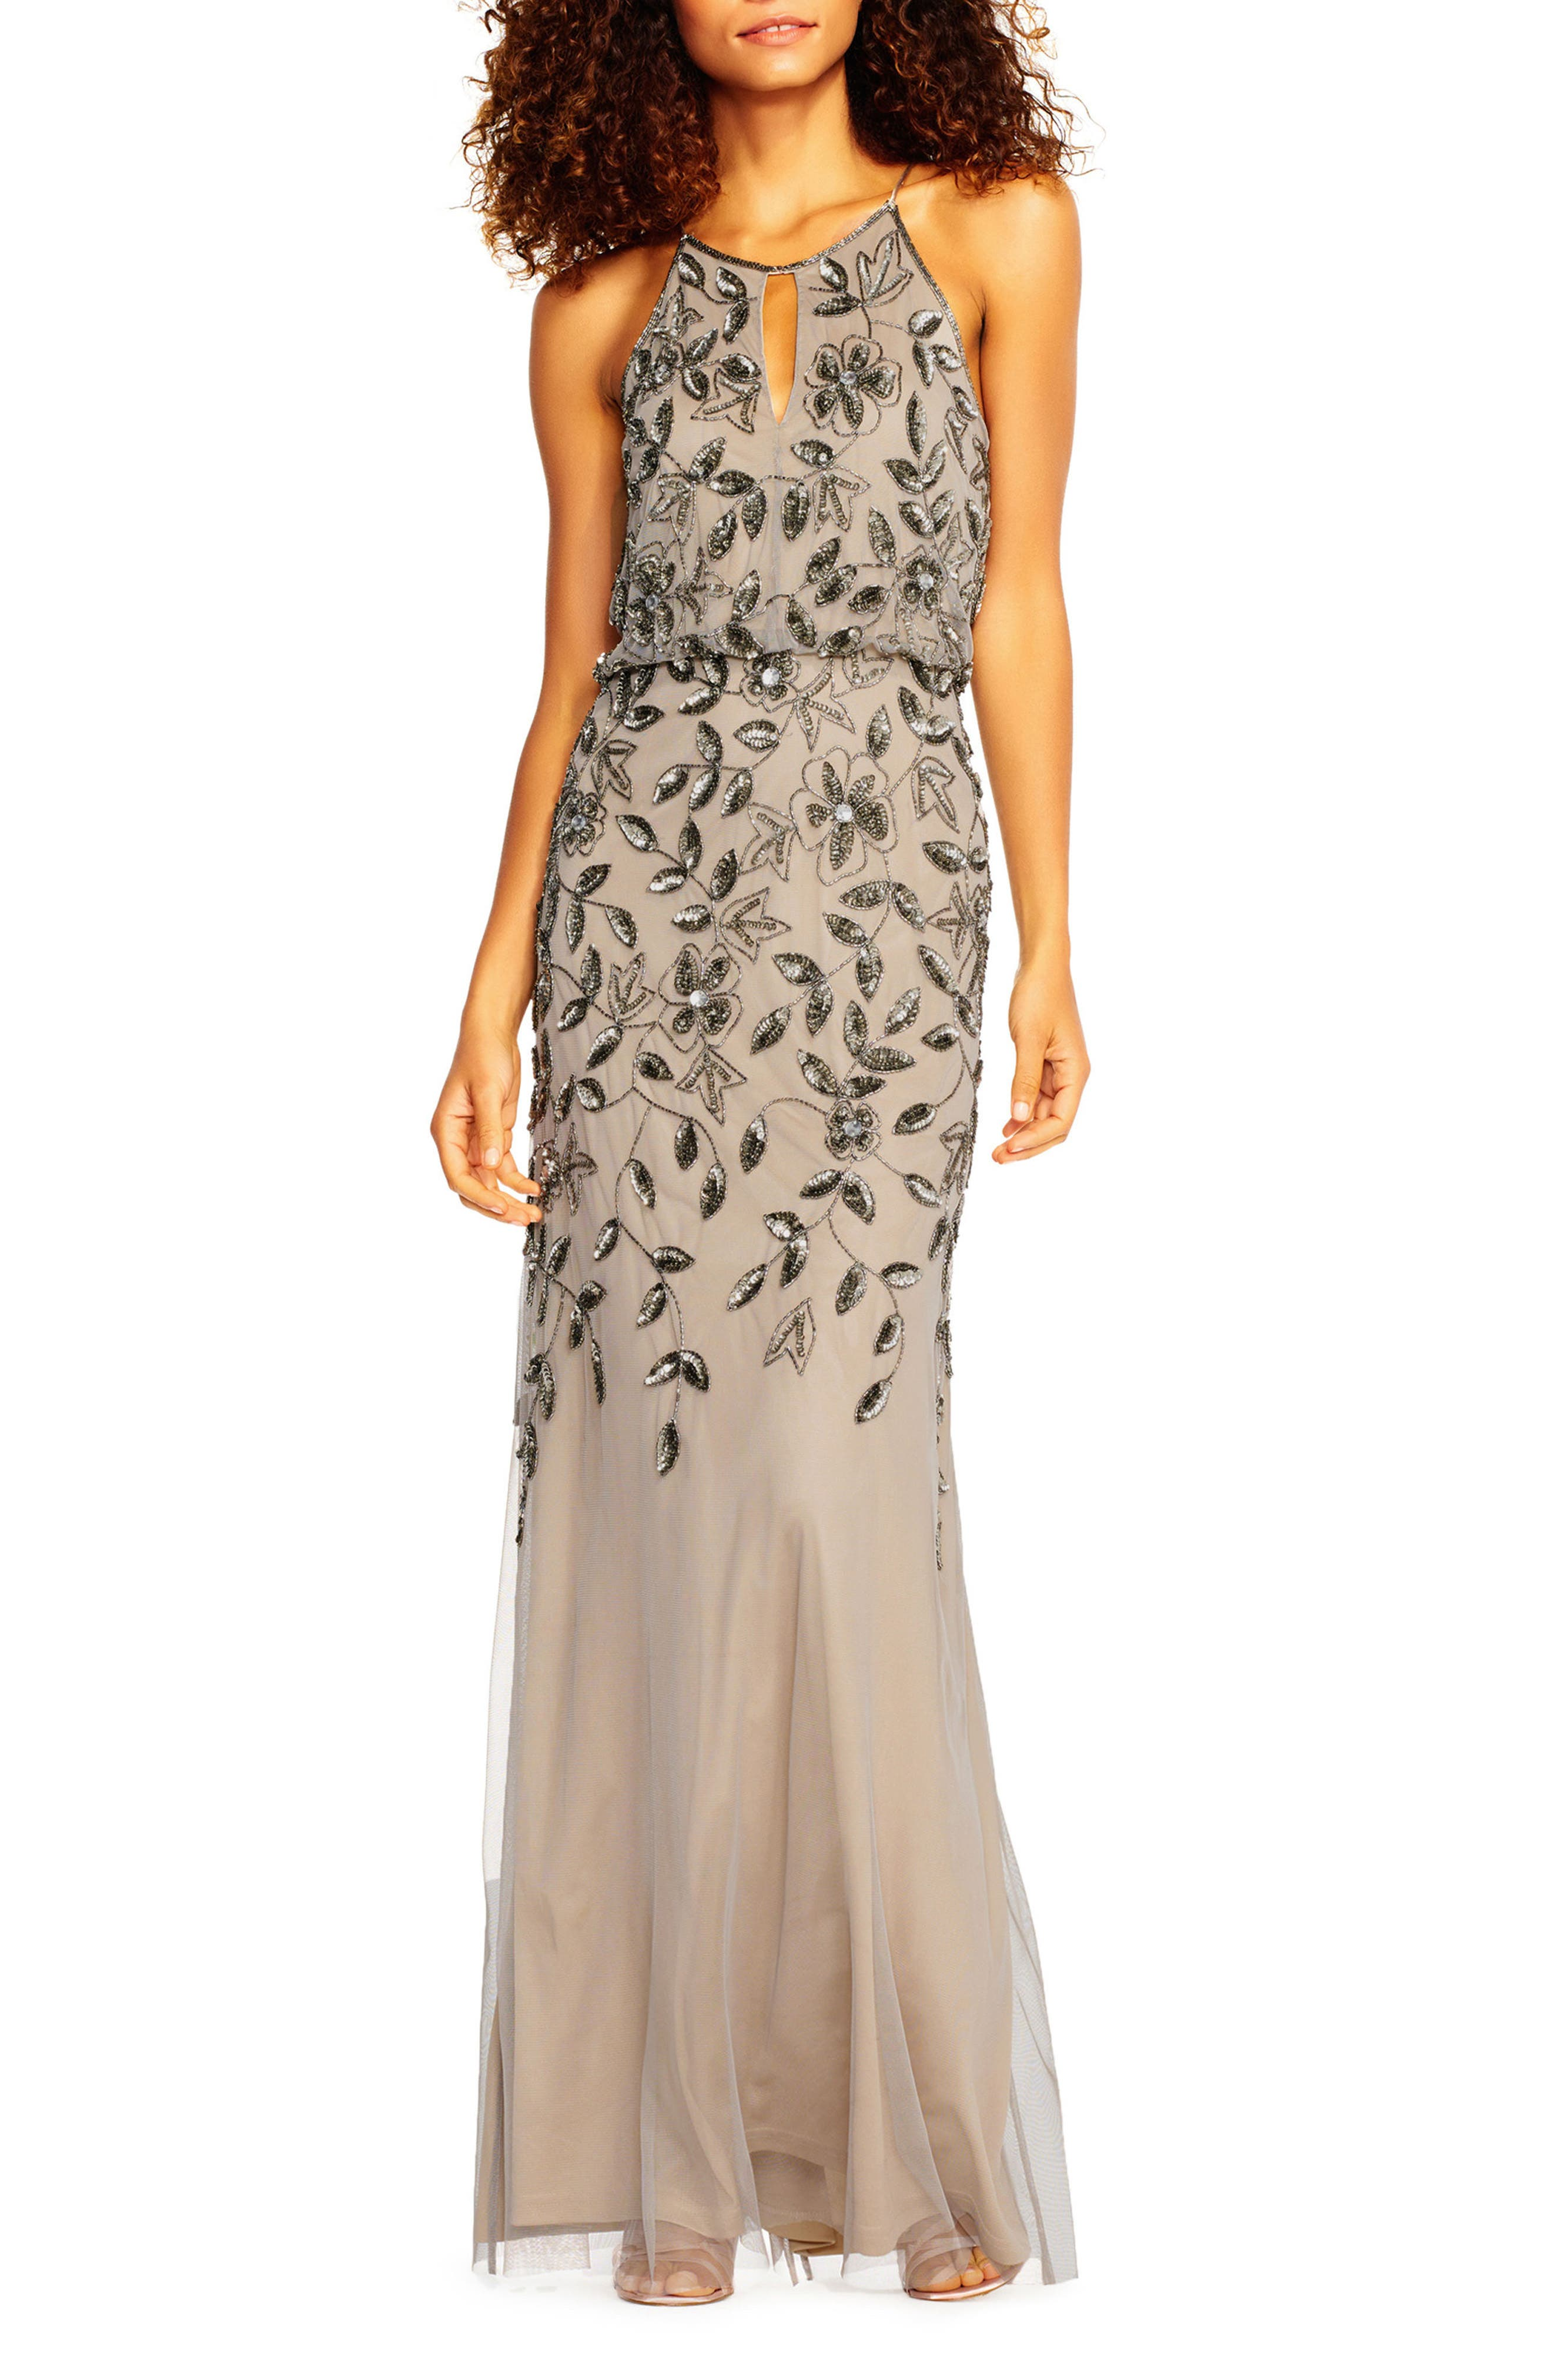 Alternate Image 1 Selected - Adrianna Papell Beaded Halter Neck Mermaid Gown